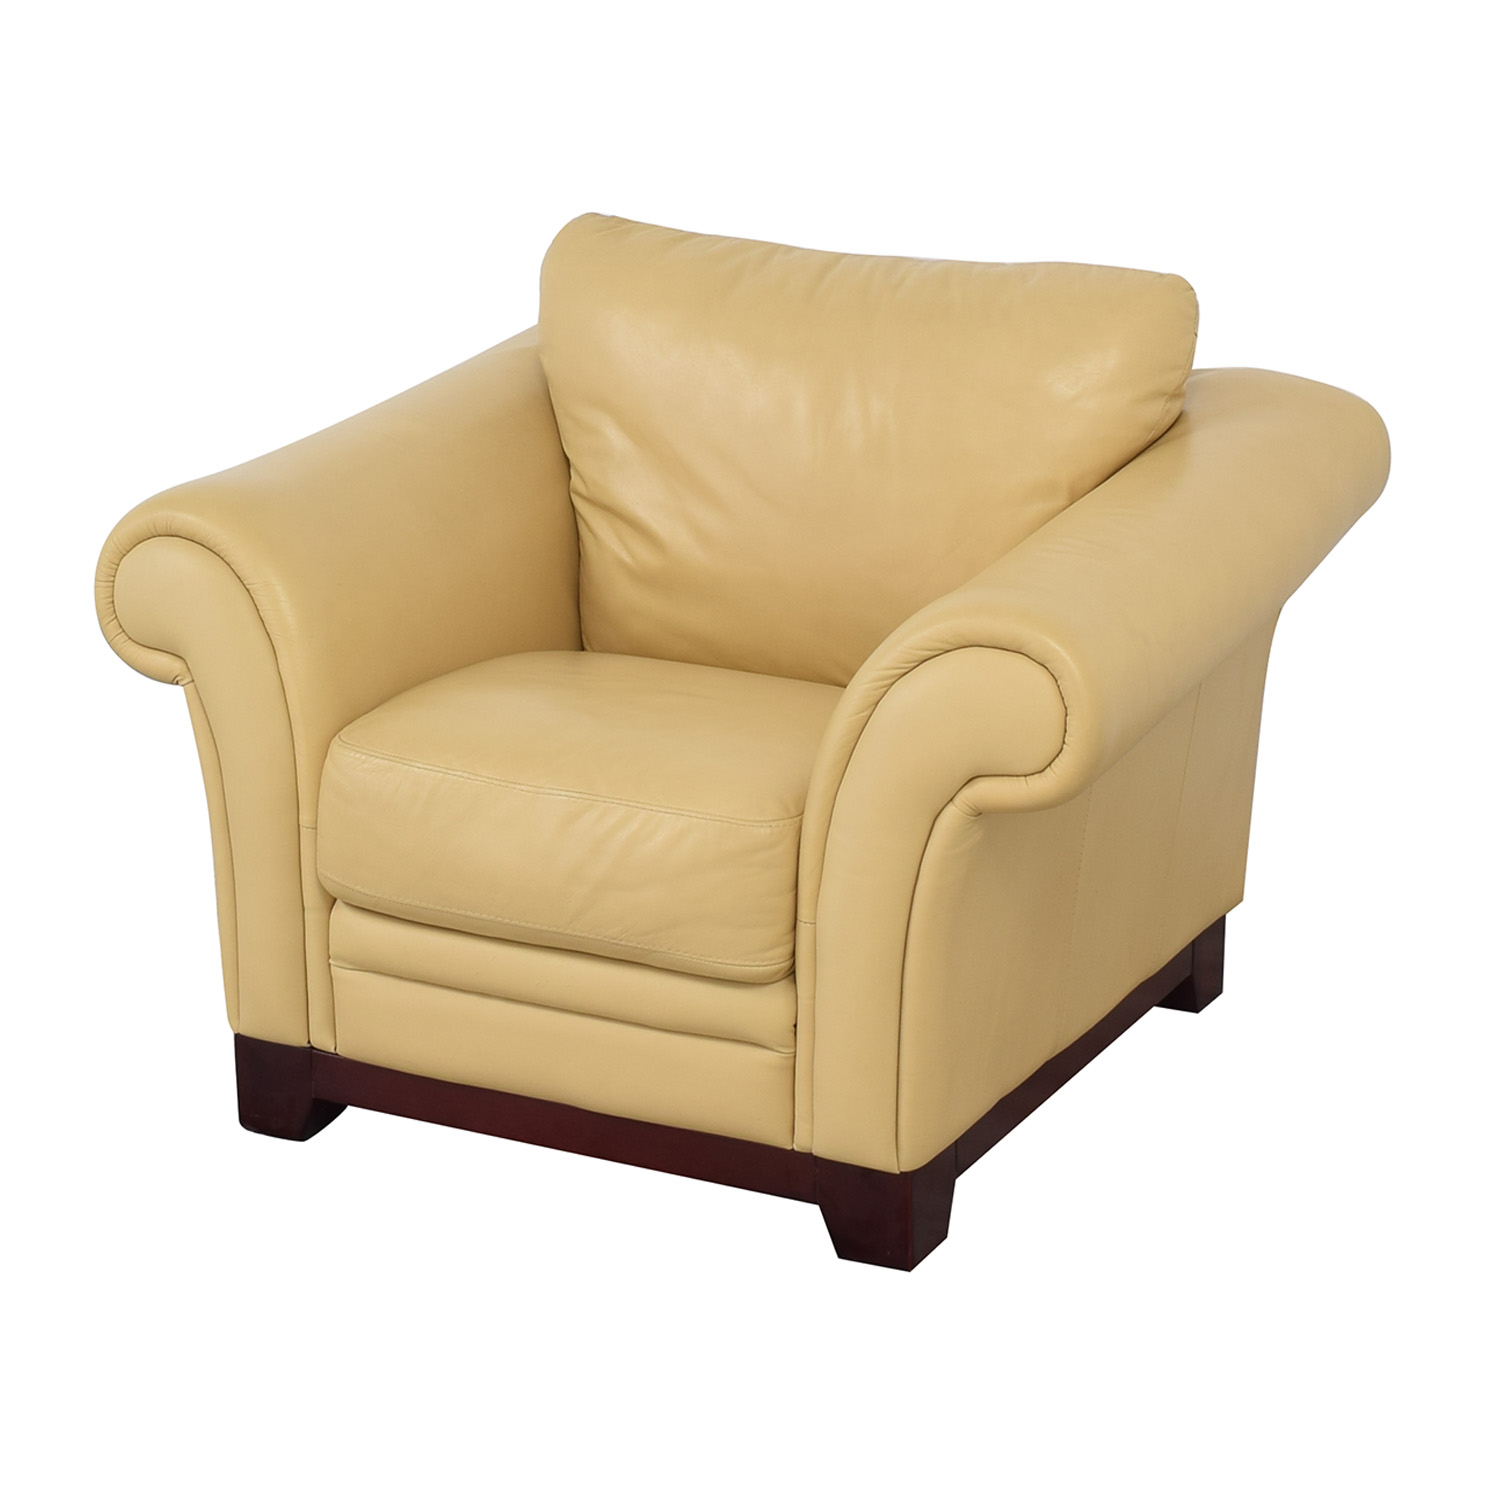 Castro Convertibles Castro Convertibles Yellow Leather Armchair for sale